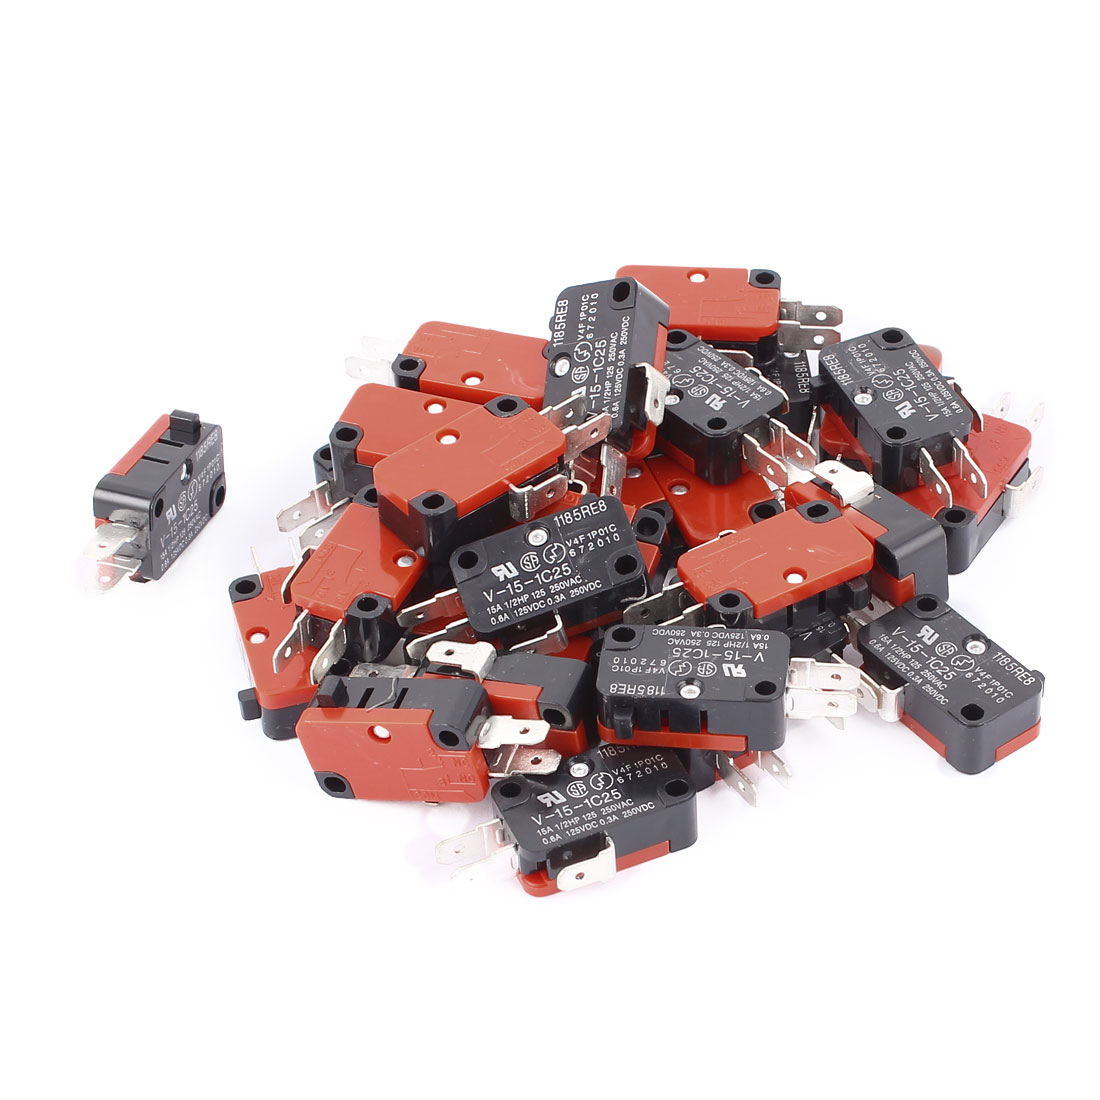 20Pcs AC250V/125V 15A Snap Action Push Button SPDT Momentary Mini Limit Switch